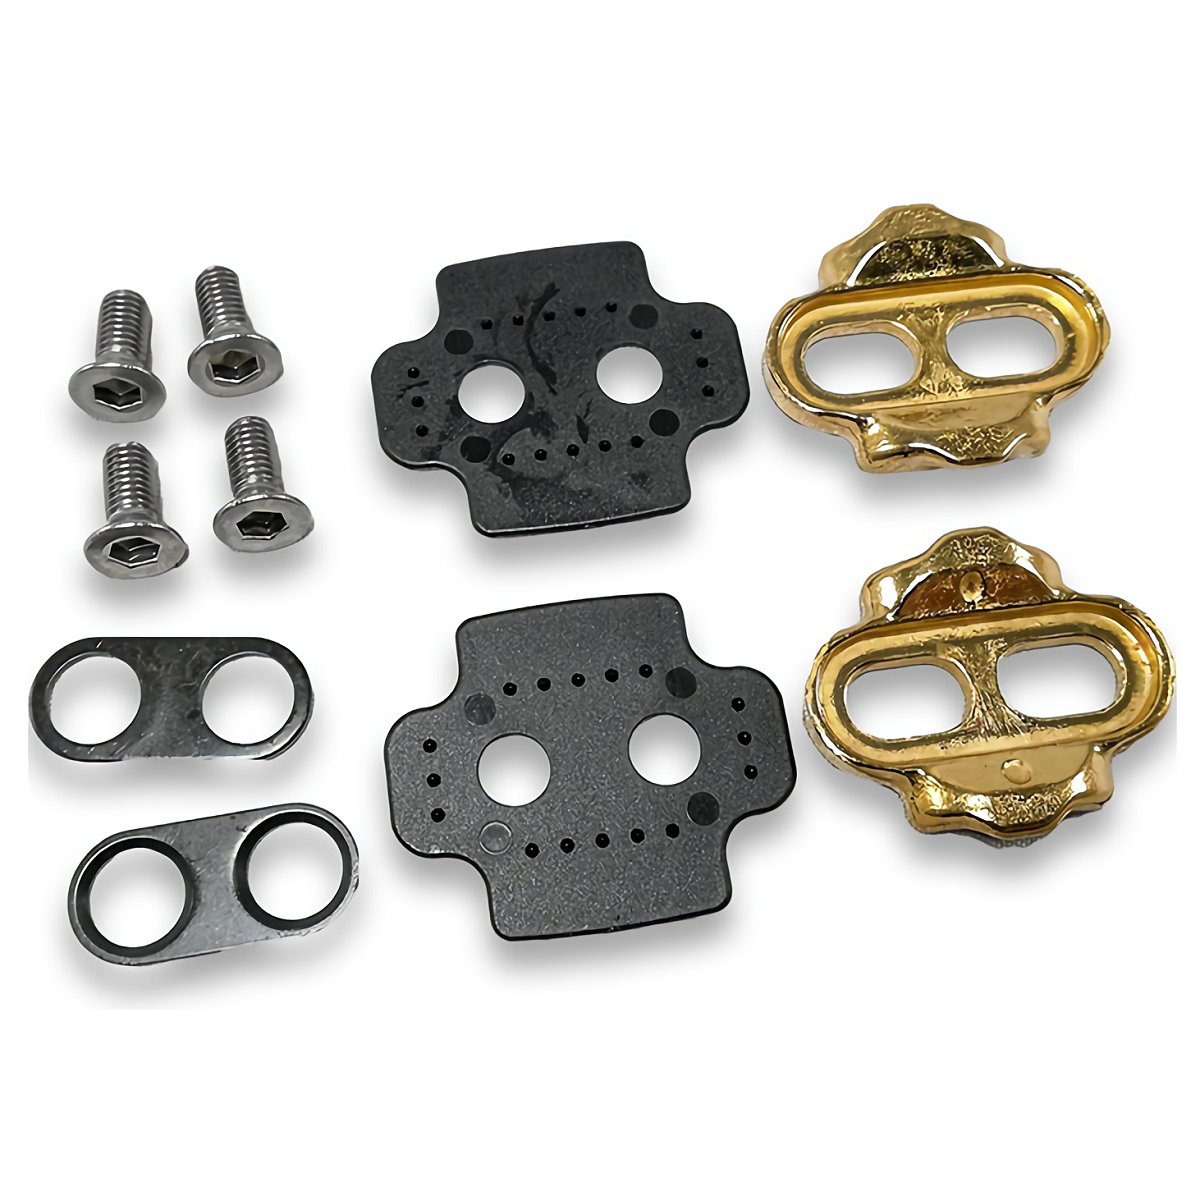 Crank Brothers premium cleat kit